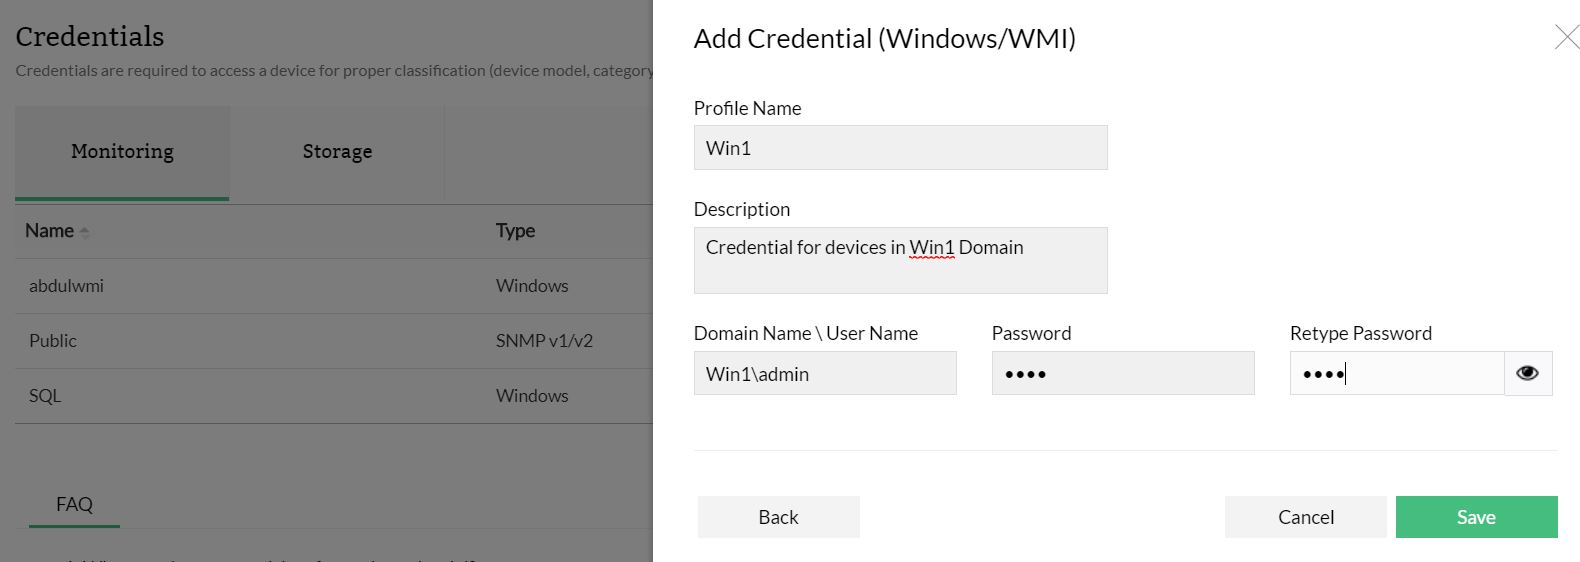 Configuring WMI Credentials